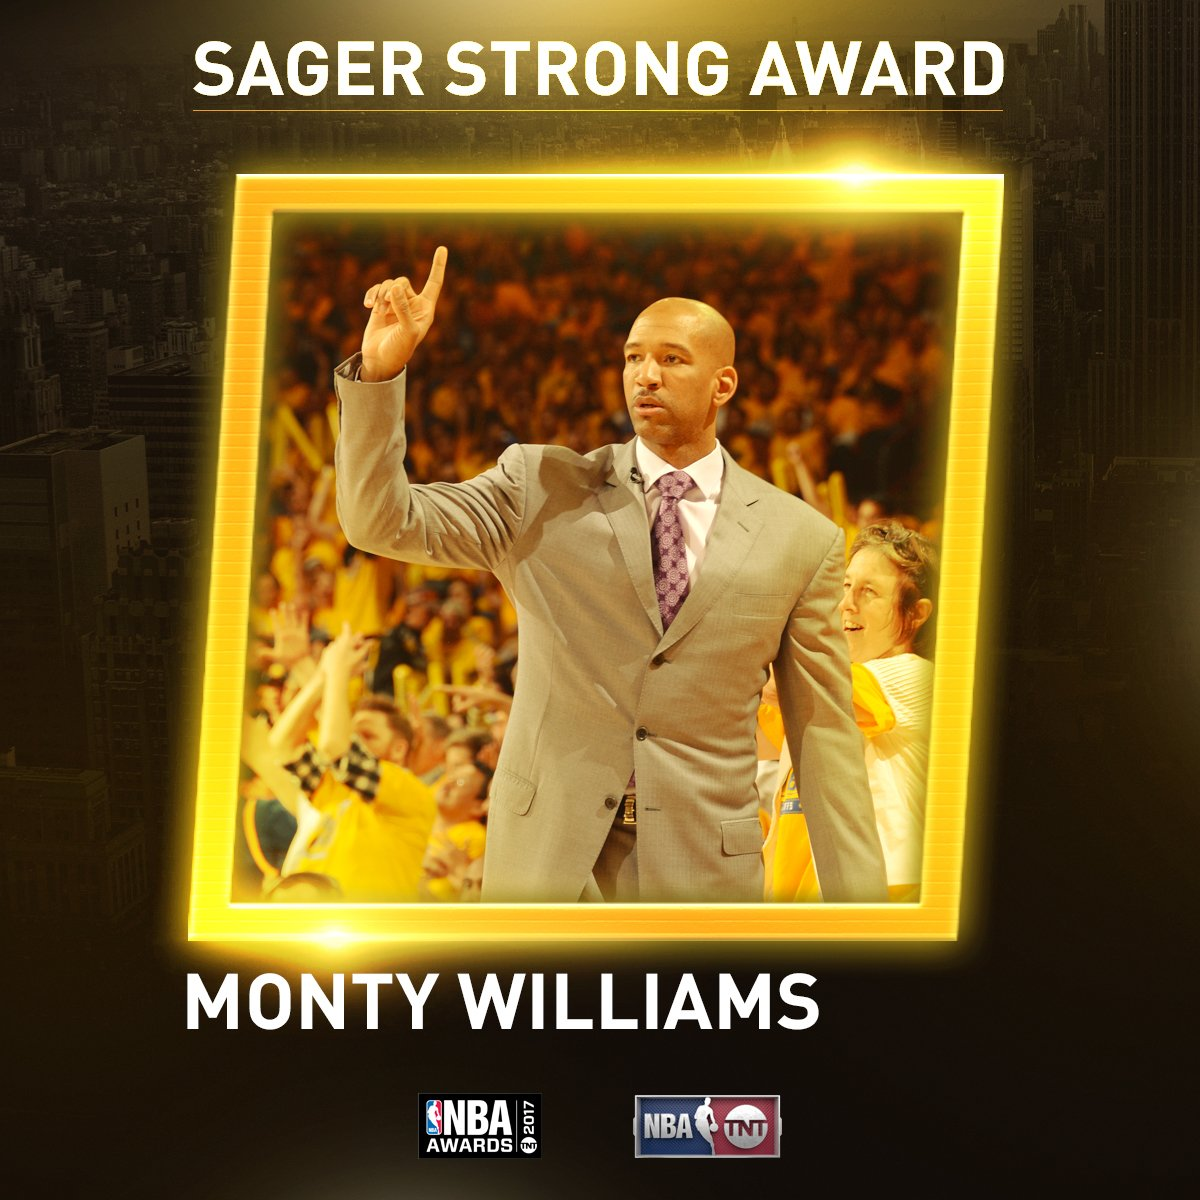 Monty Williams is the recipient of the inaugural #SagerStrong Award....